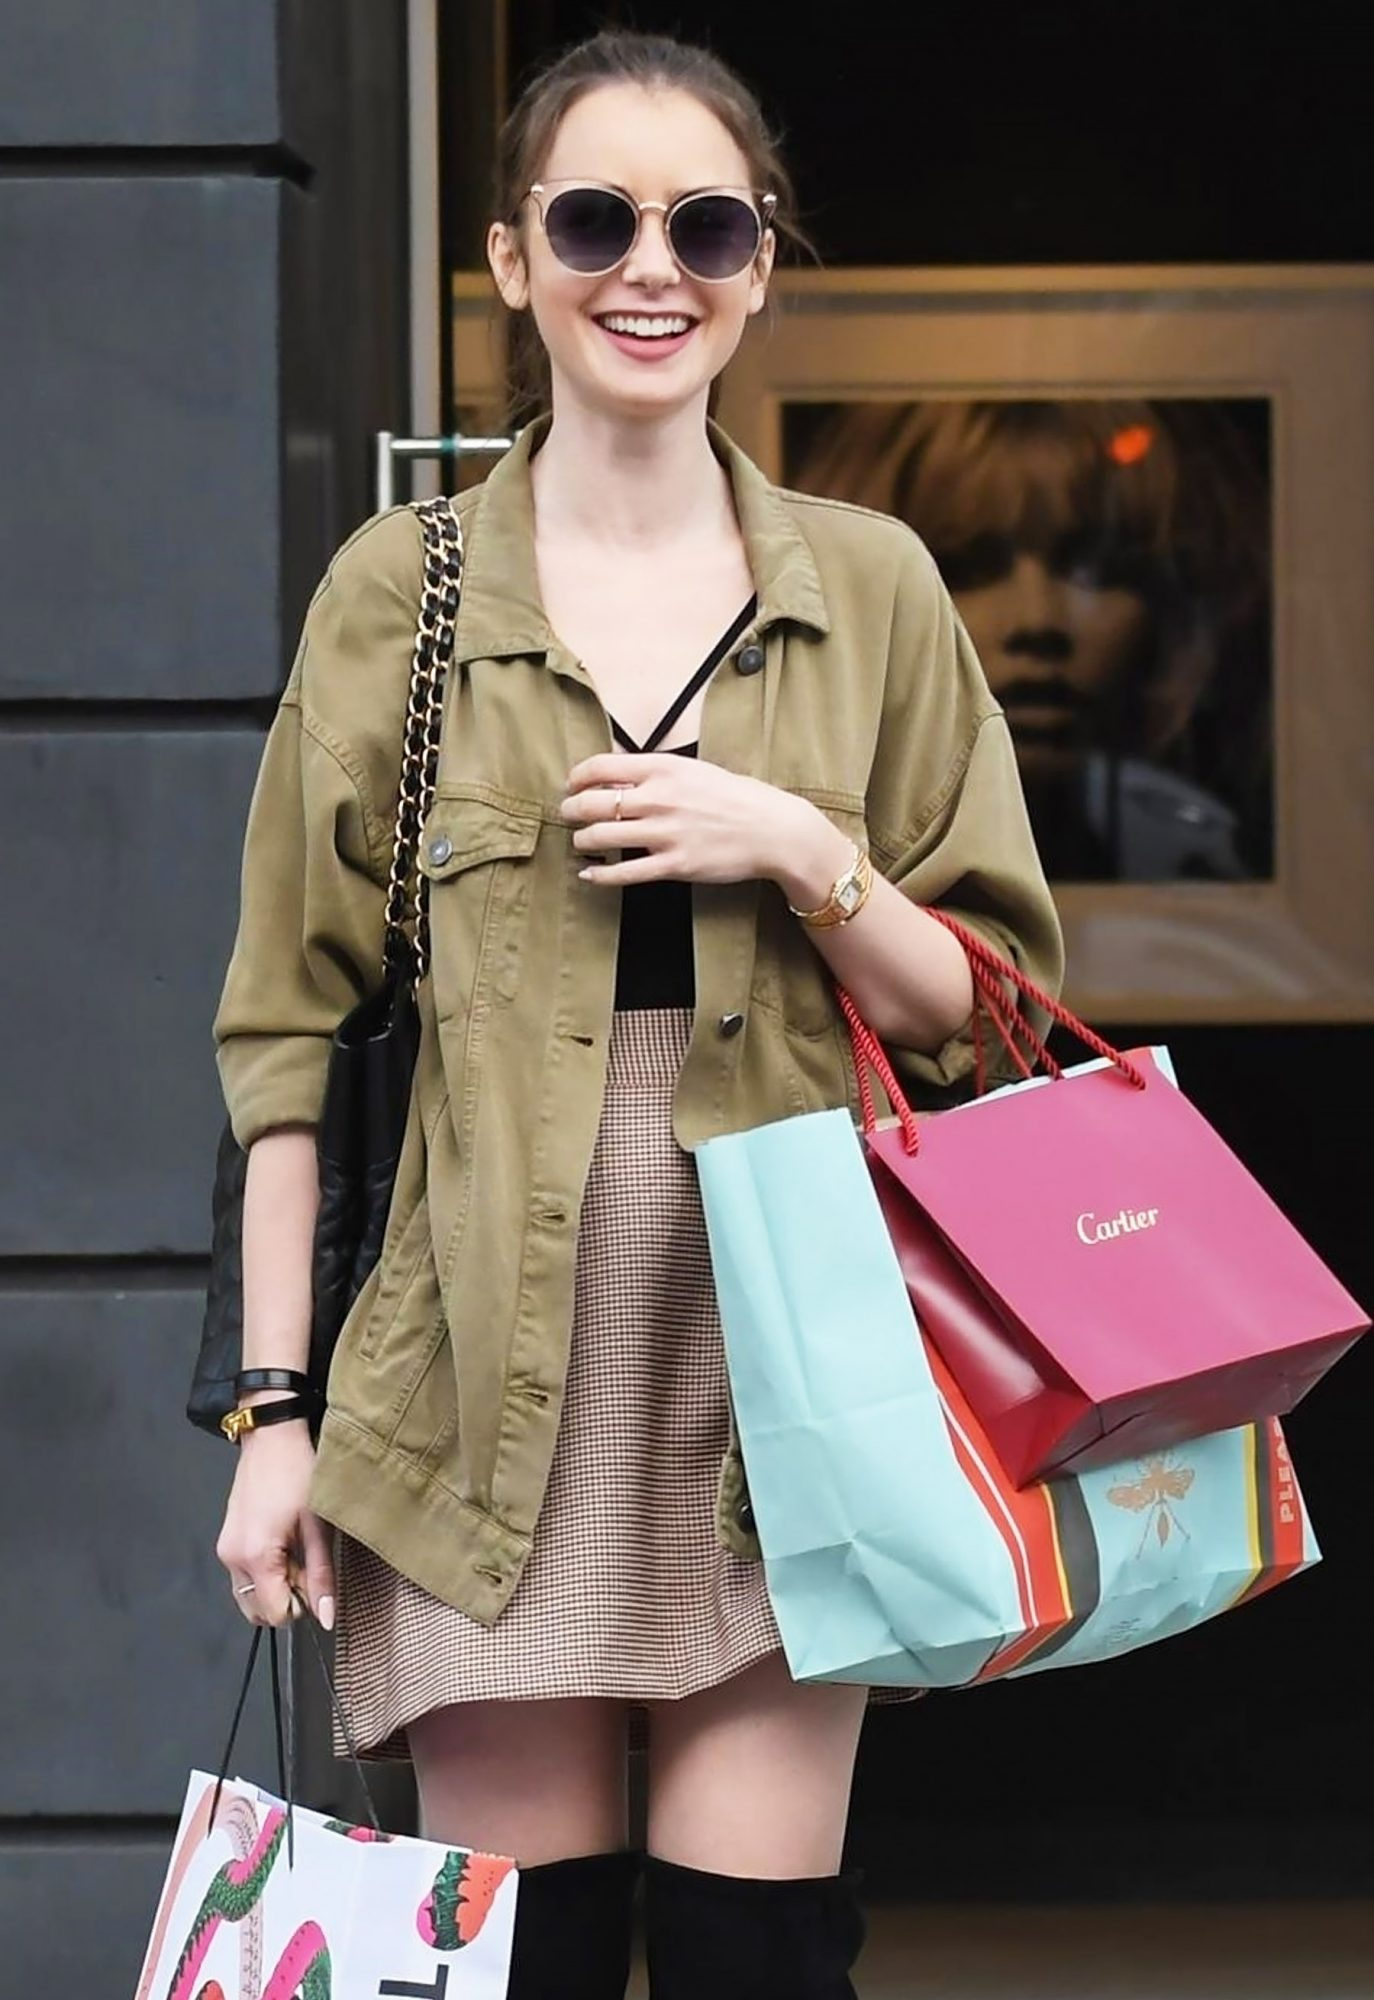 Lily Collins gets an early start on her Christmas shopping at Cartier